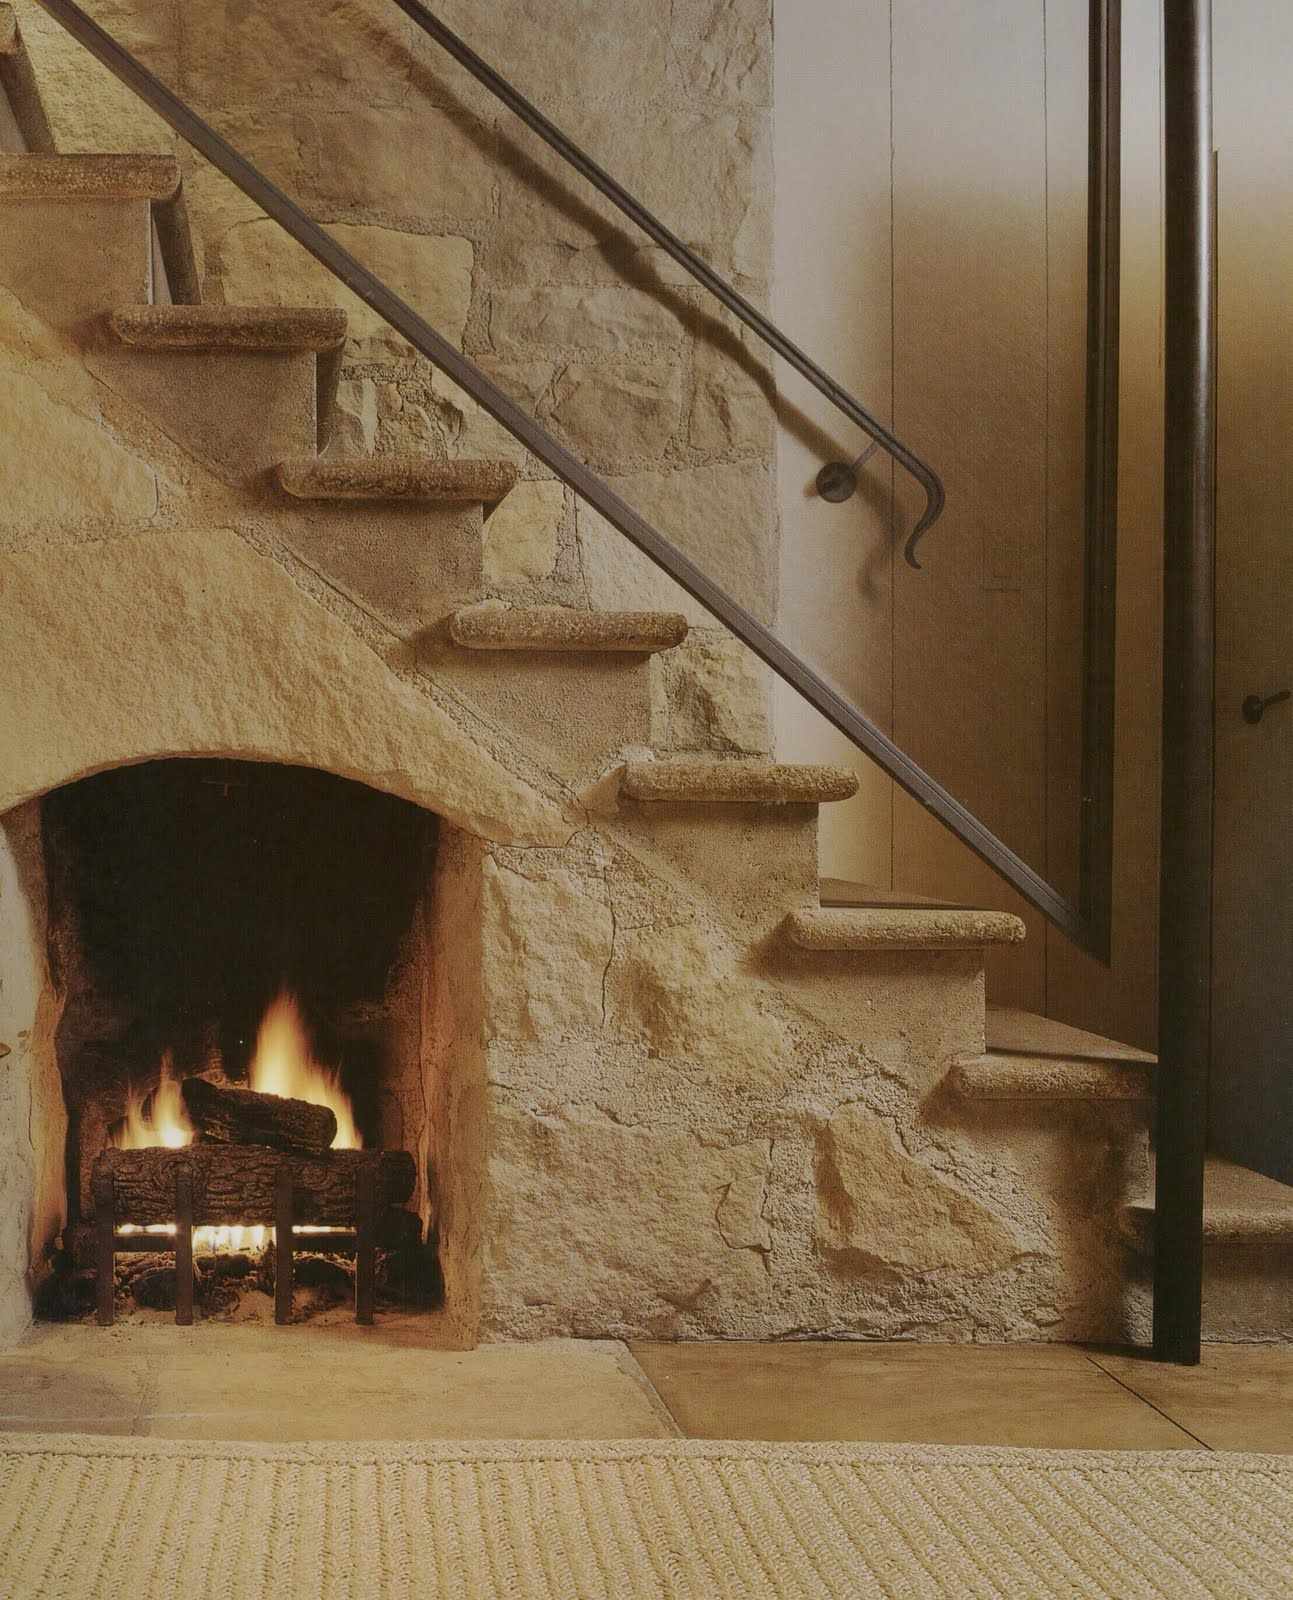 Escalera Hogar Stair Space Fireplace Bagnaccio Ideas Pinterest